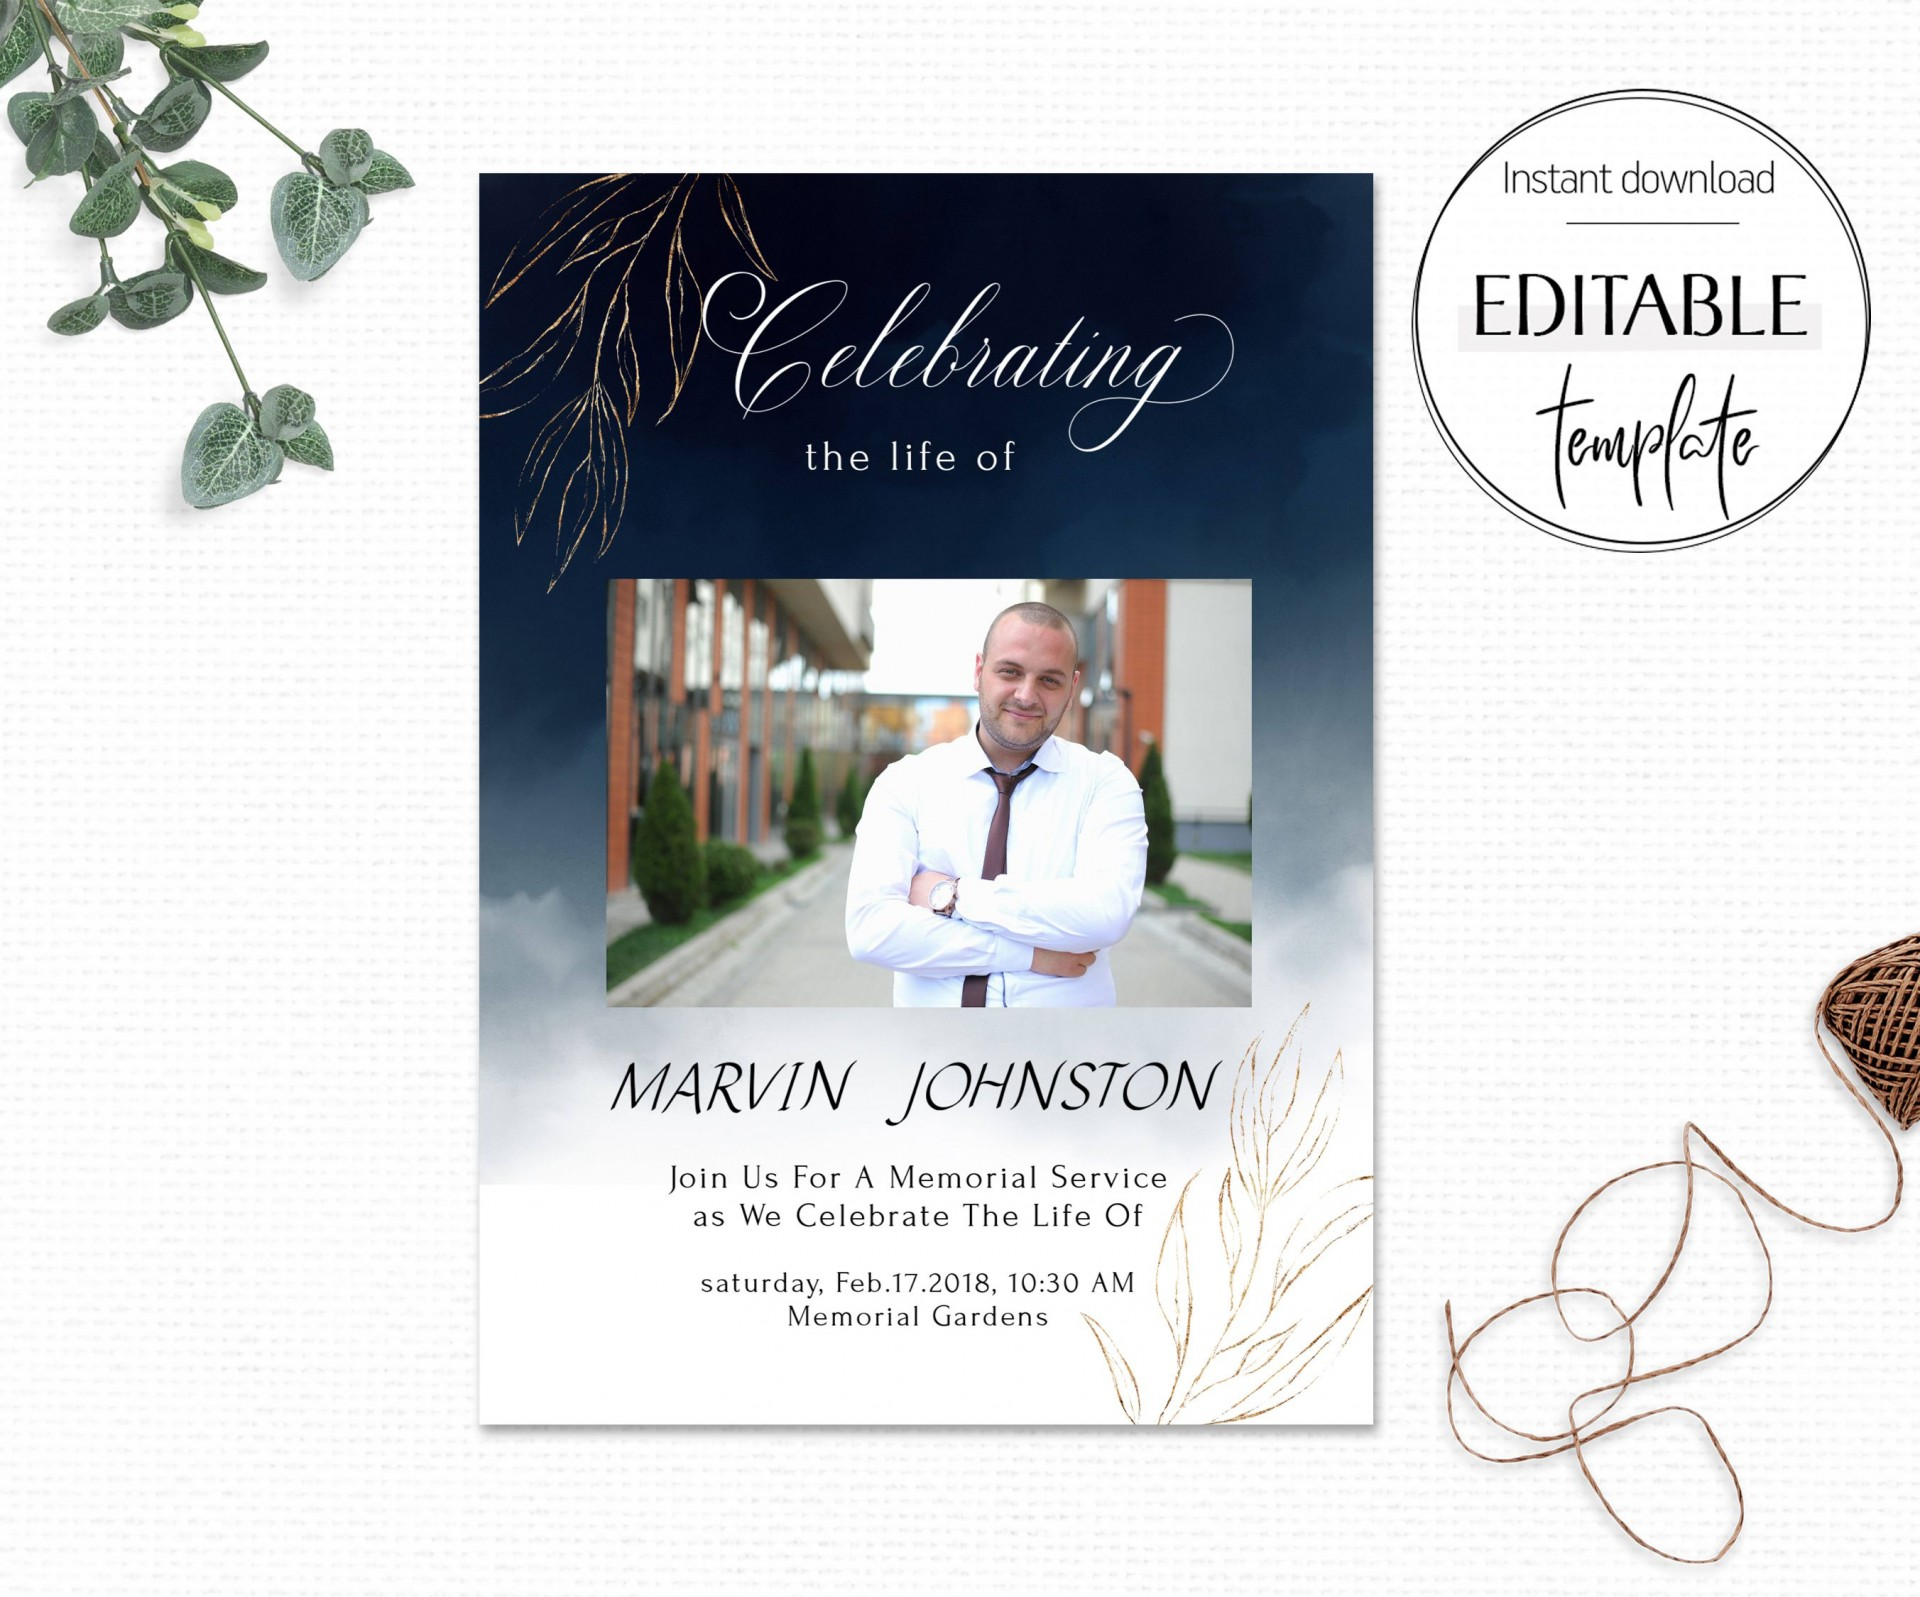 007 Rare Celebration Of Life Invite Template Free Image  Invitation Download1920